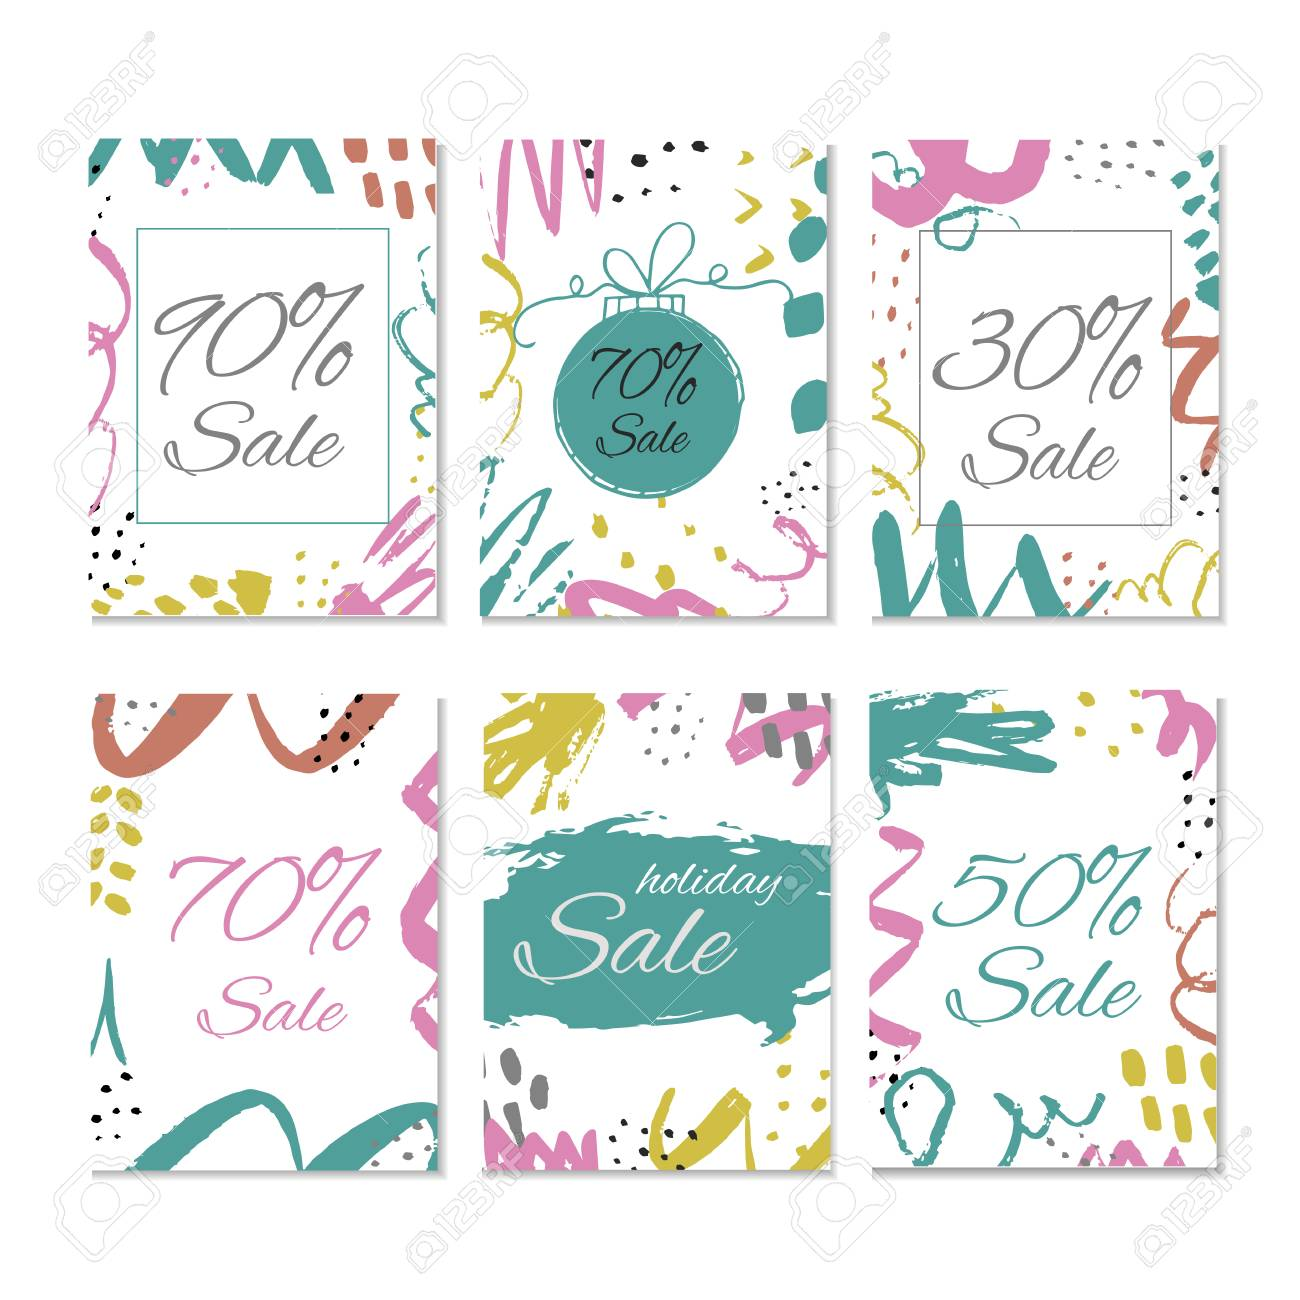 set of 6 creative sale holiday website banner templates christmas and new year hand drawn